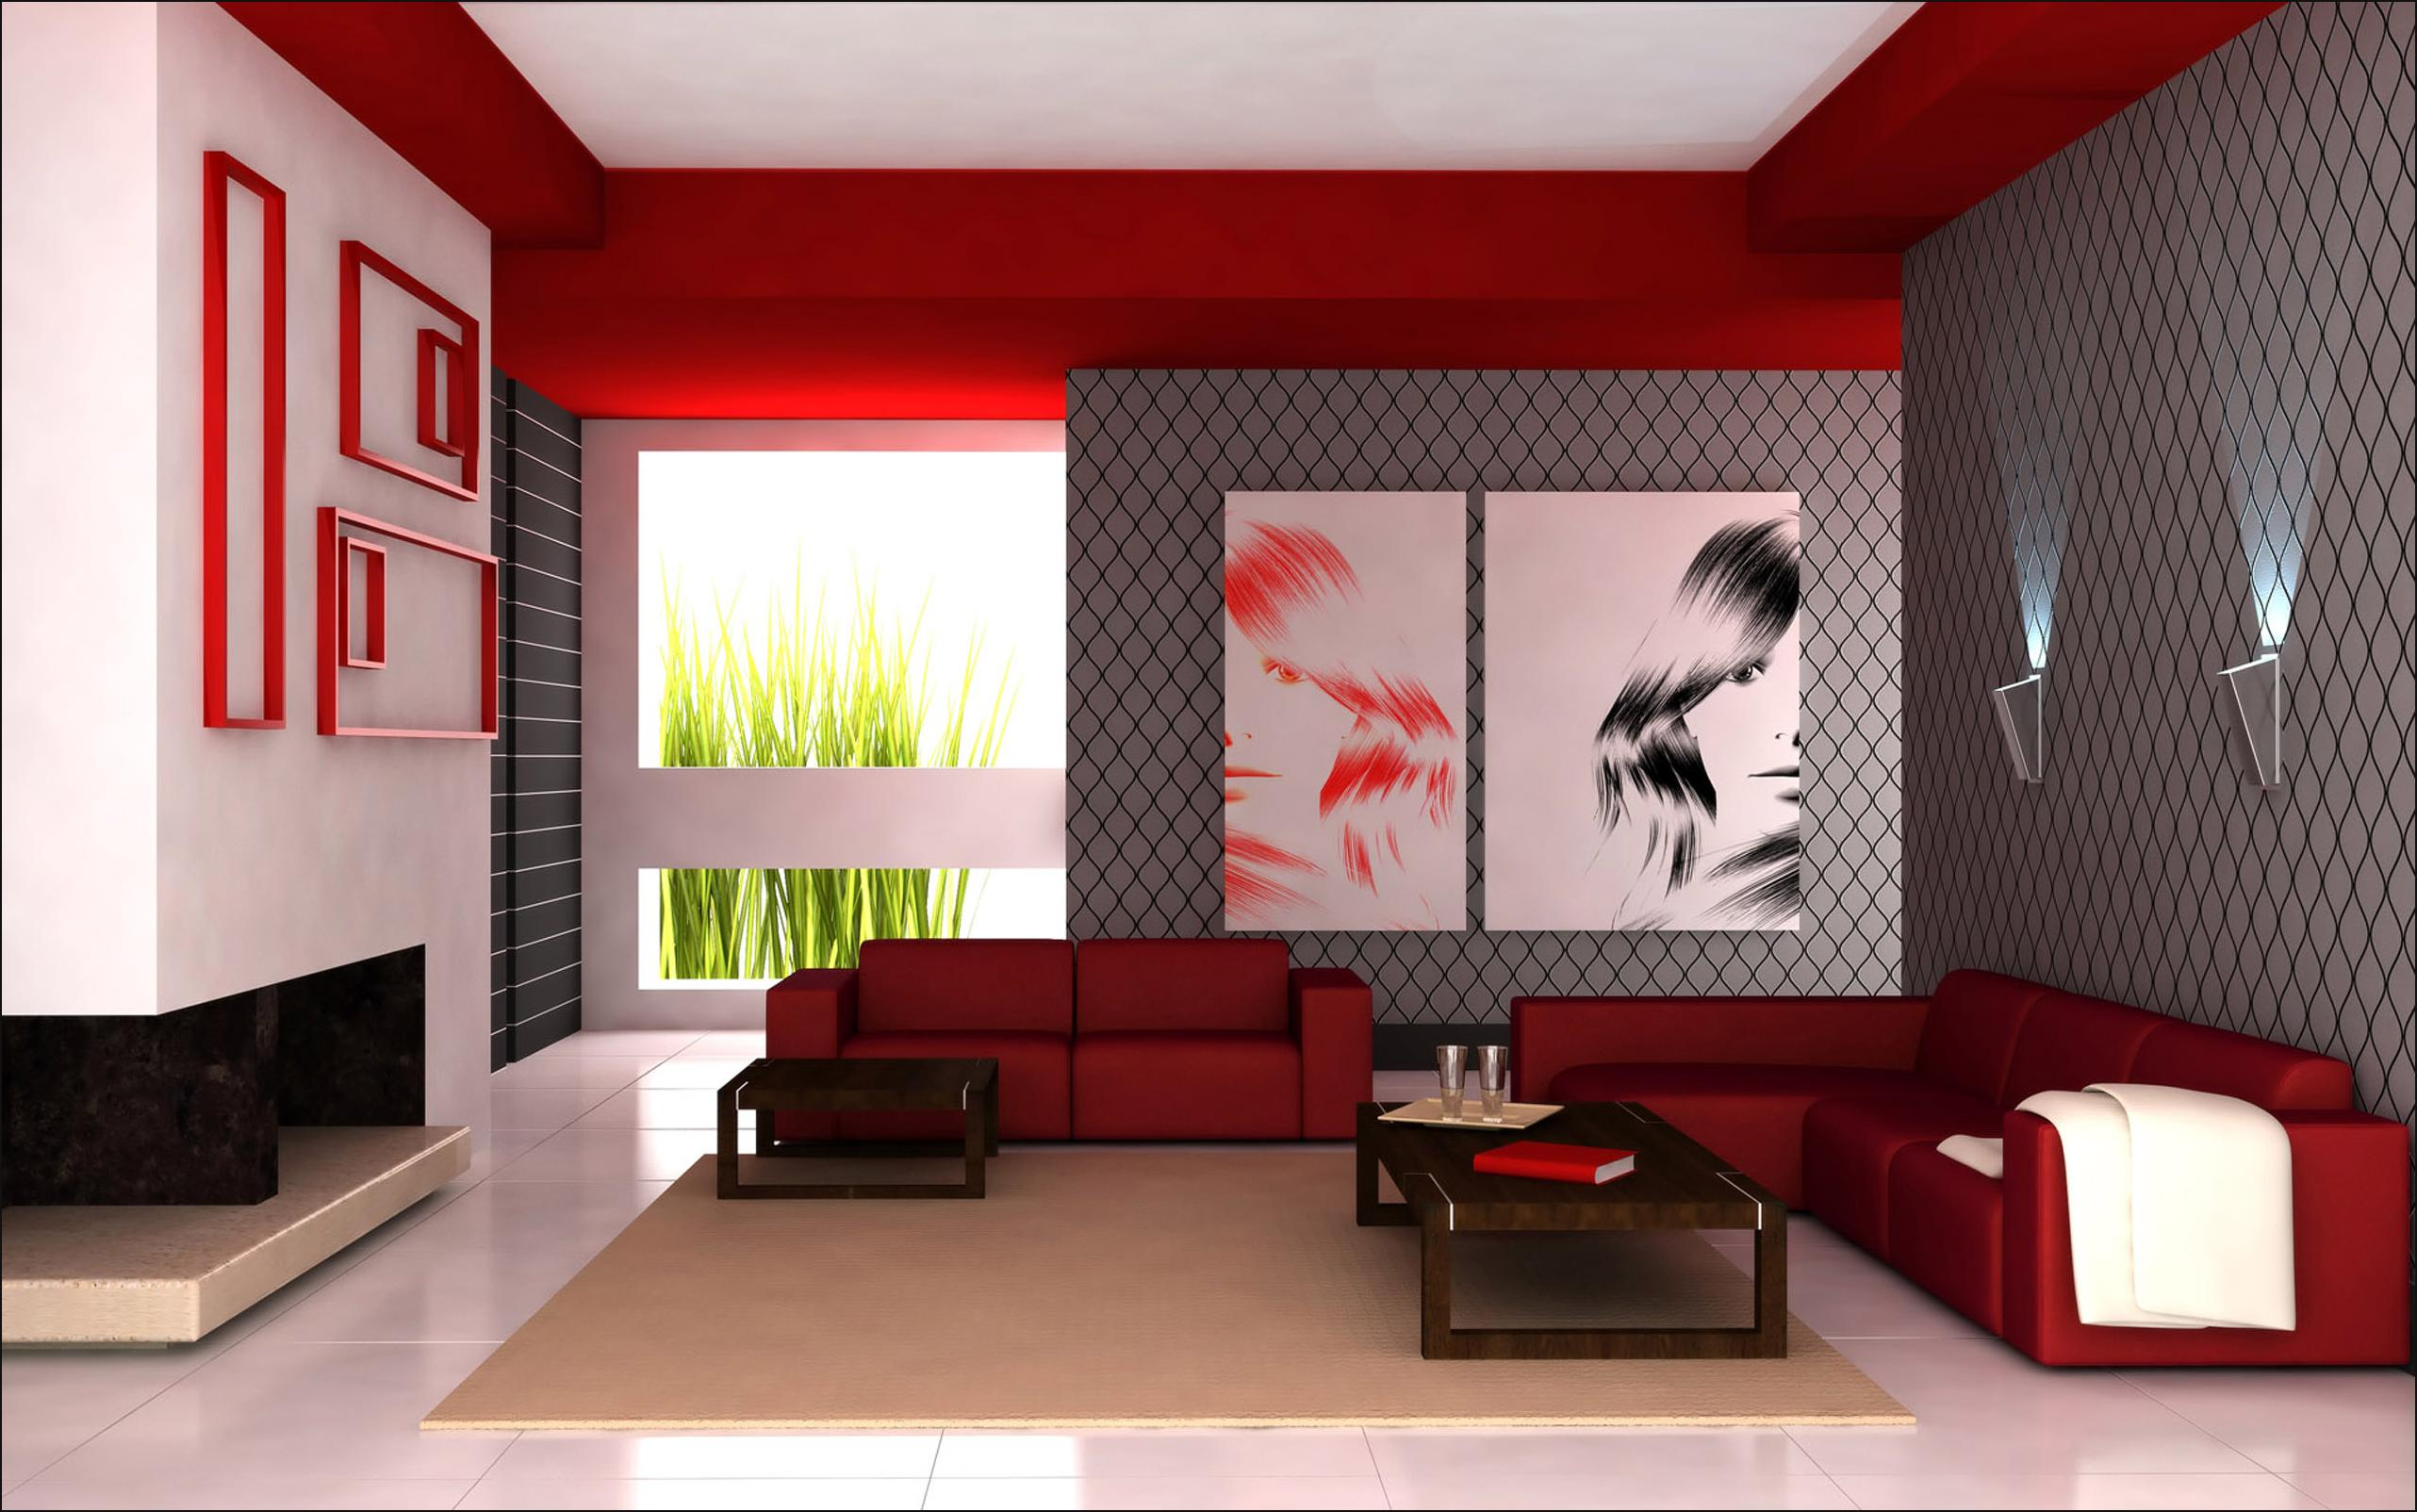 Best Ideas To Decorate With Red Accents